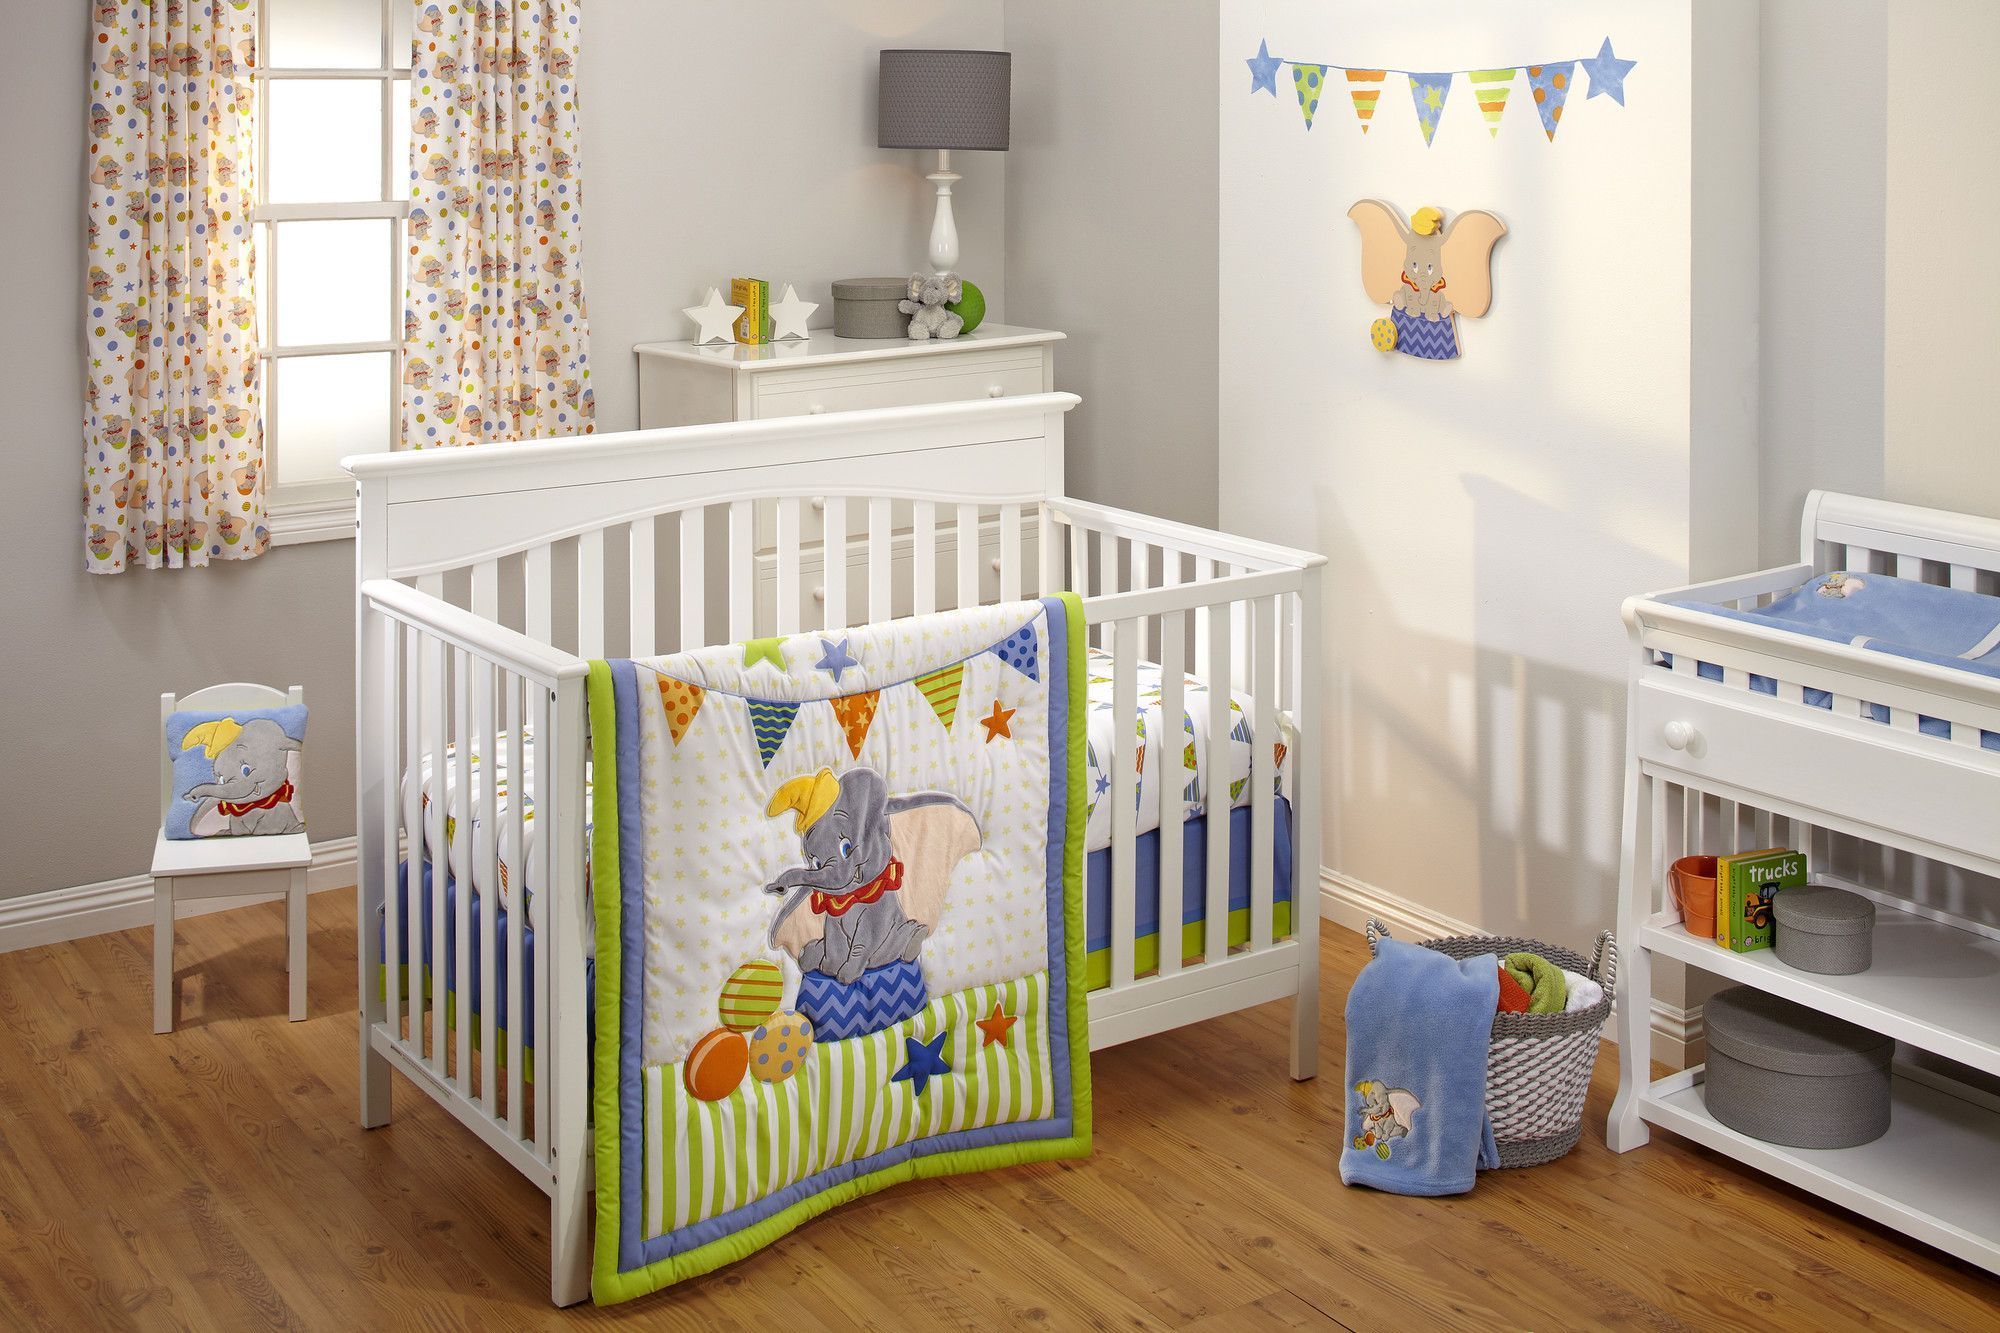 Features Dumbo Collection Number Of Pieces 3 Pieces Included An Appliqued Comforter Fitted Crib Sheet And Dust Ruffle Crib Bedding Sets Crib Bedding Baby Bedding Sets